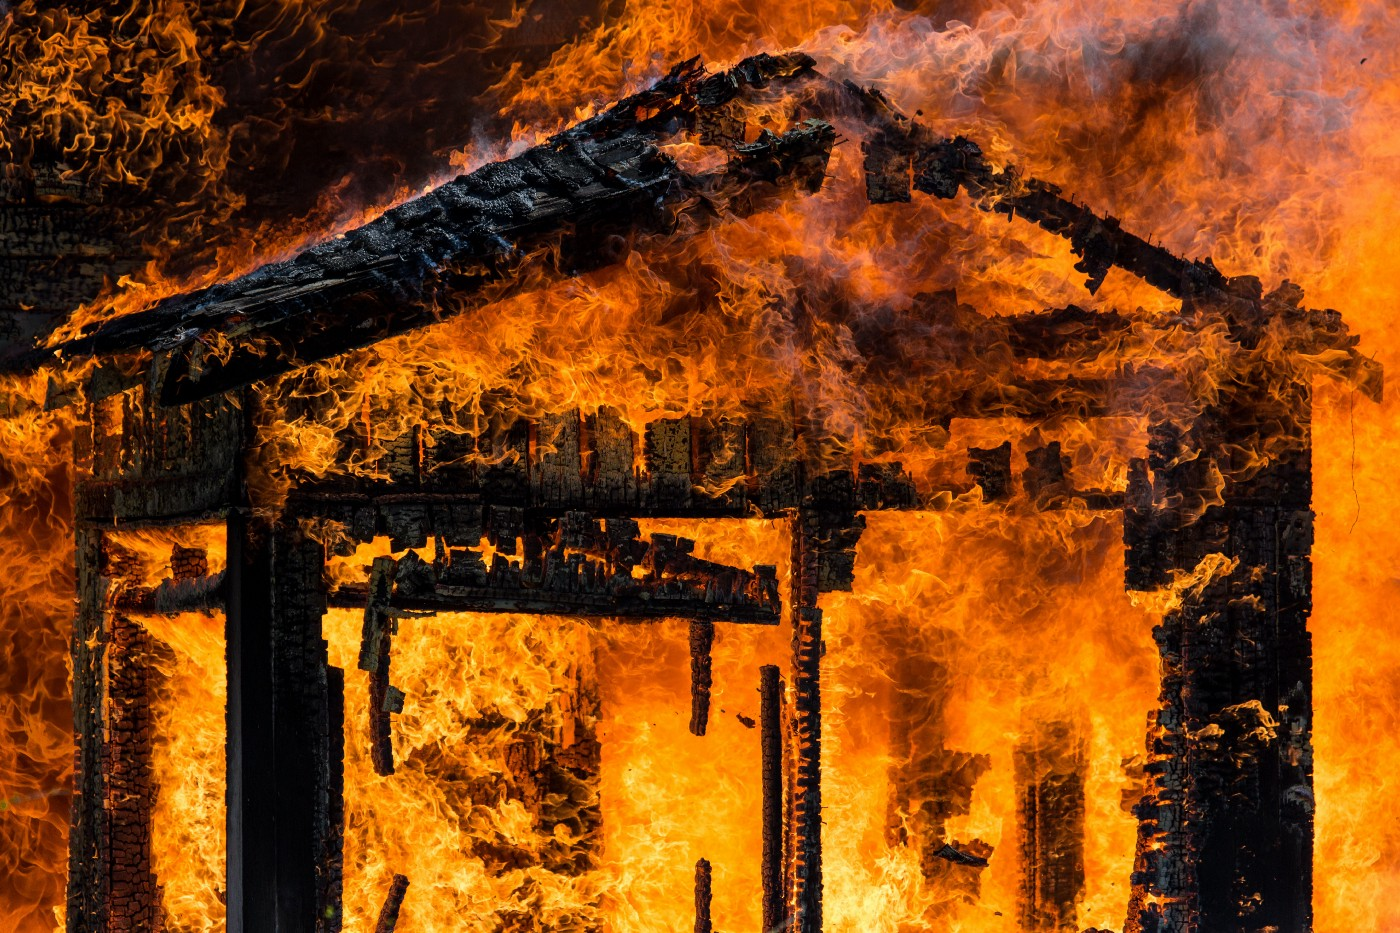 A photo of a burning house.